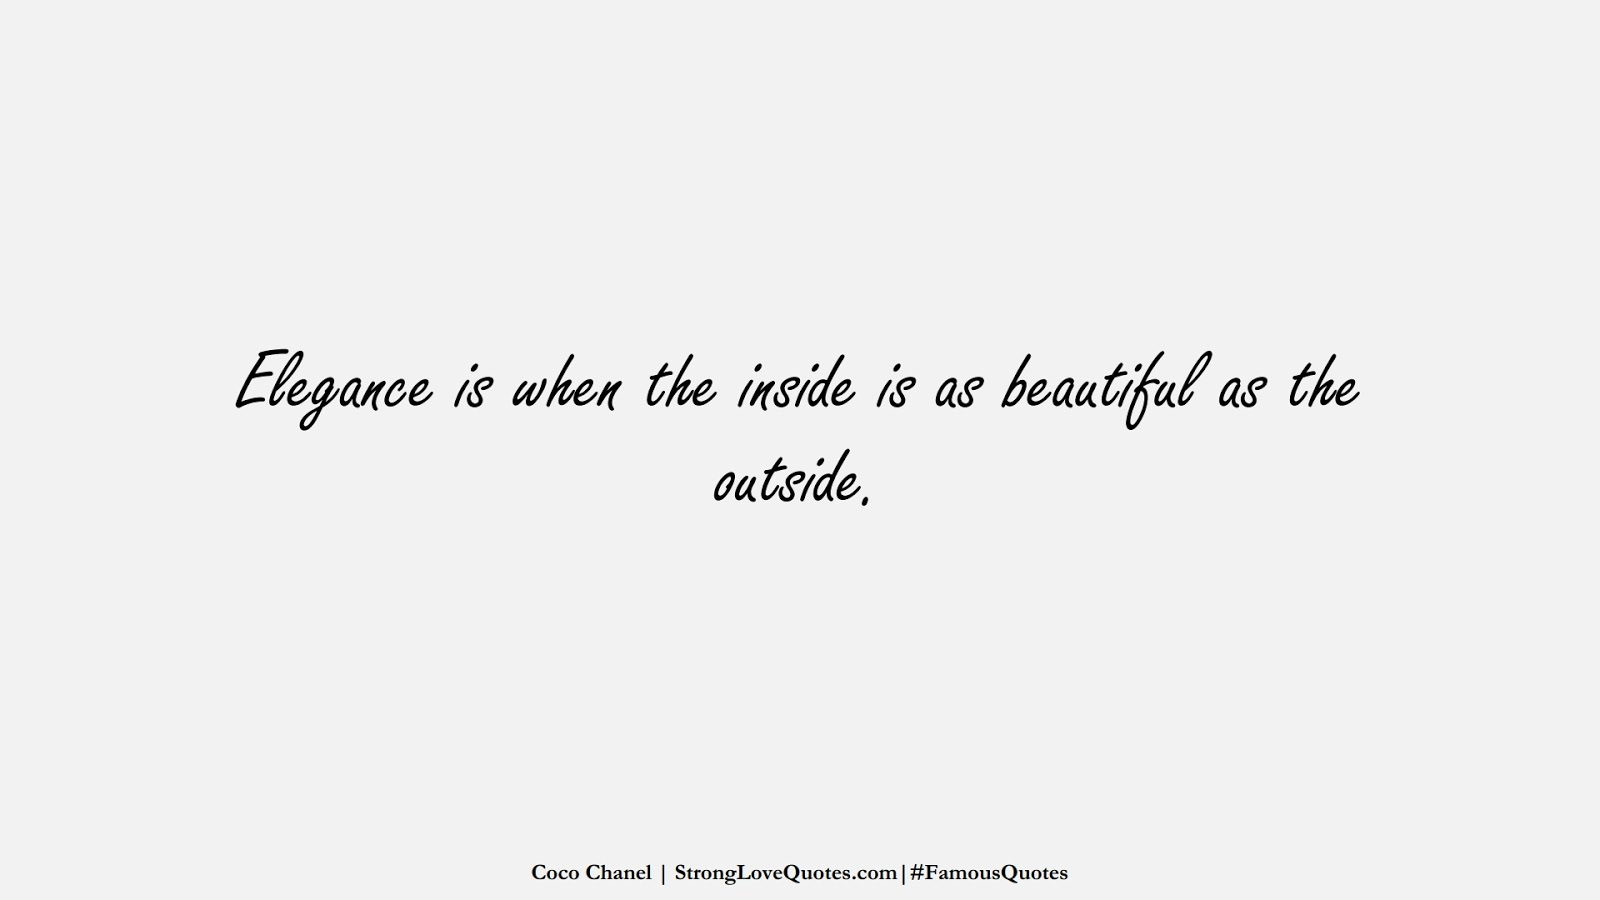 Elegance is when the inside is as beautiful as the outside. (Coco Chanel);  #FamousQuotes